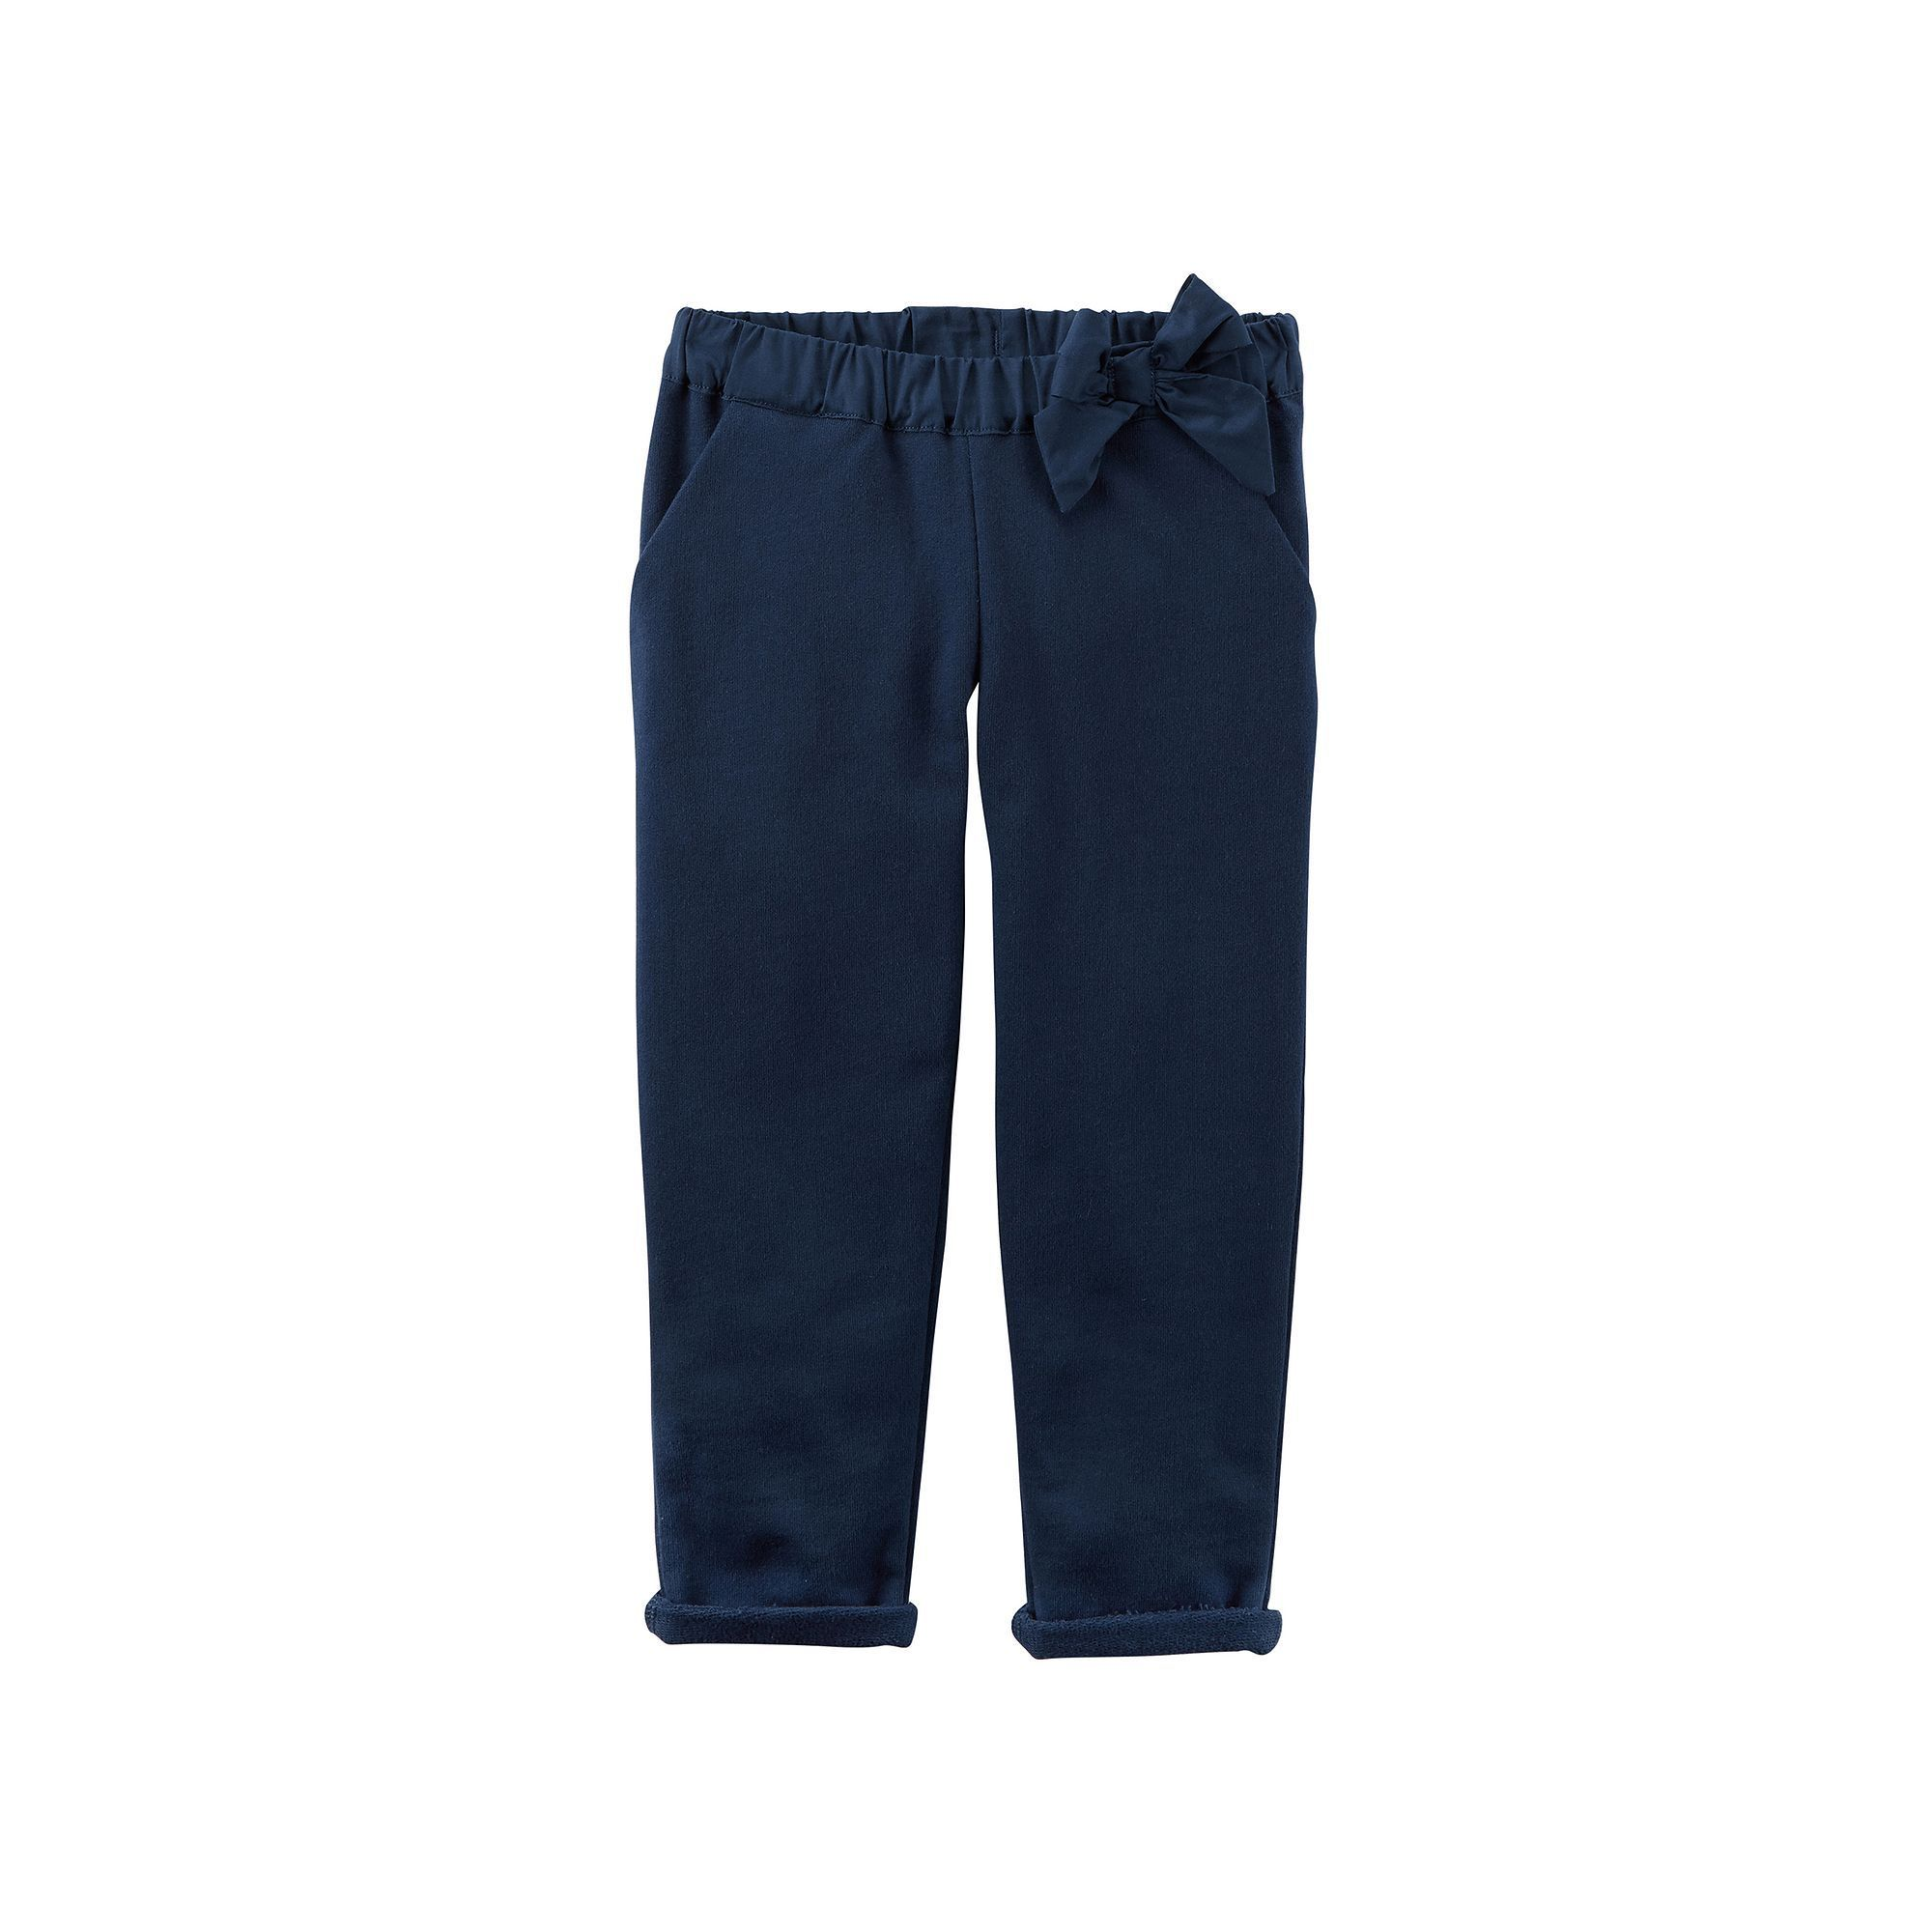 Toddler Girl Carter's Bow French Terry Pants, Blue